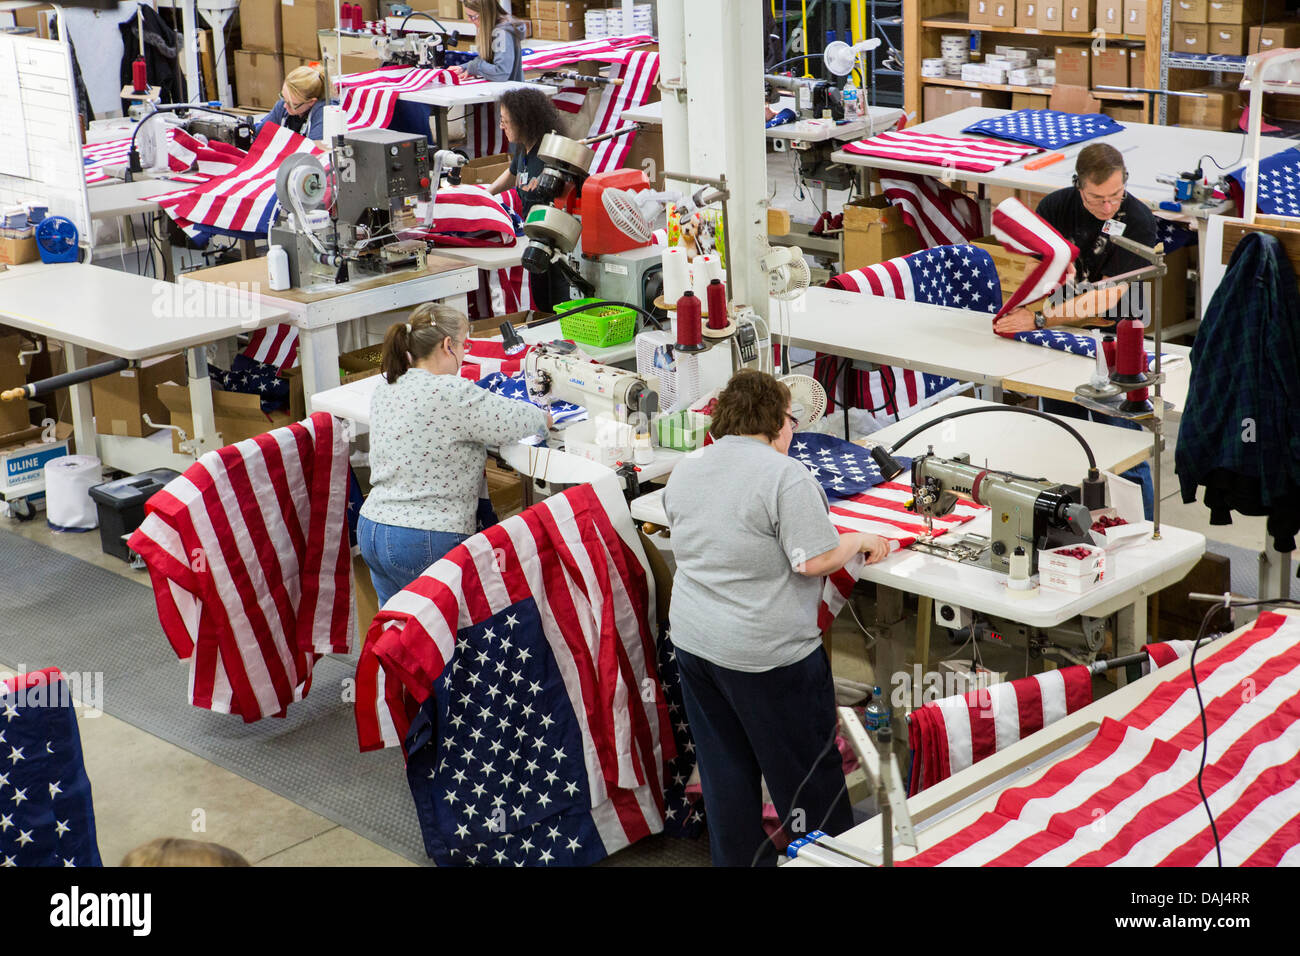 The Annin Flagmakers factory in Coshocton, Ohio.  - Stock Image